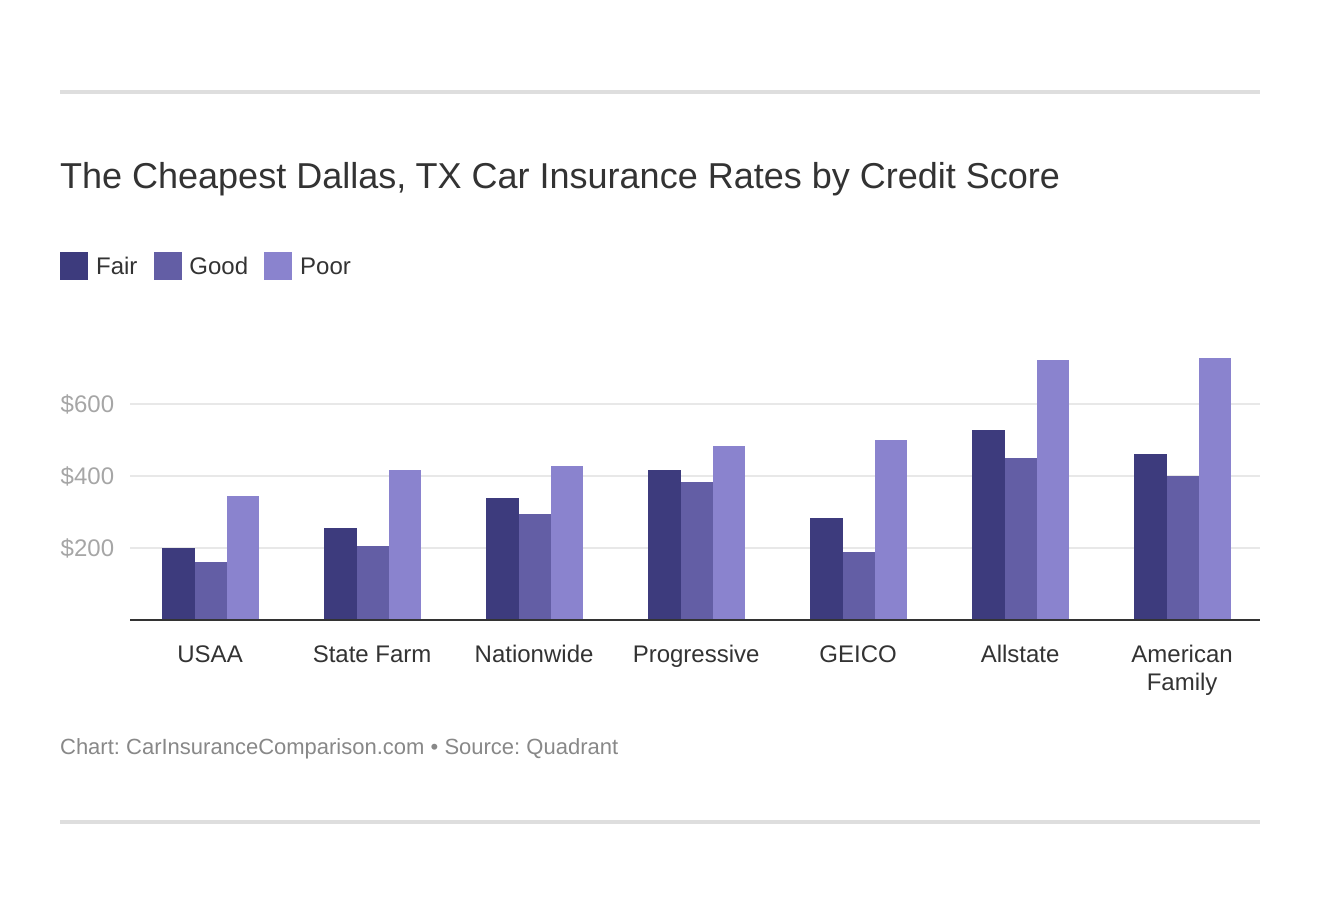 The Cheapest Dallas, TX Car Insurance Rates by Credit Score